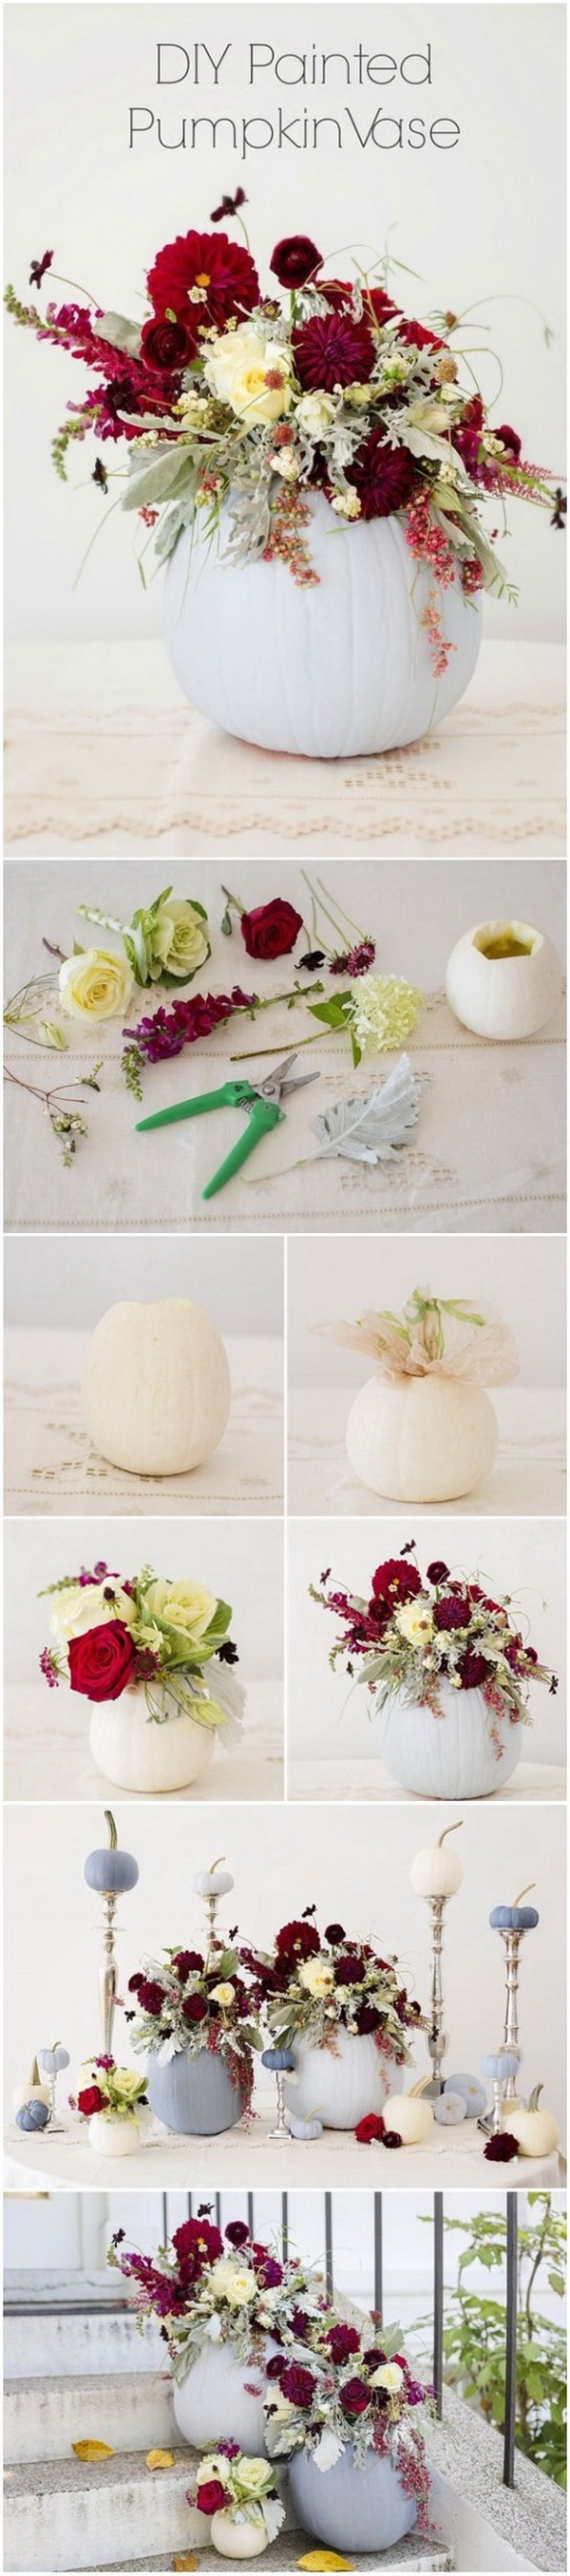 50 DIY Fall Crafts amp Decoration Ideas That Are Easy And